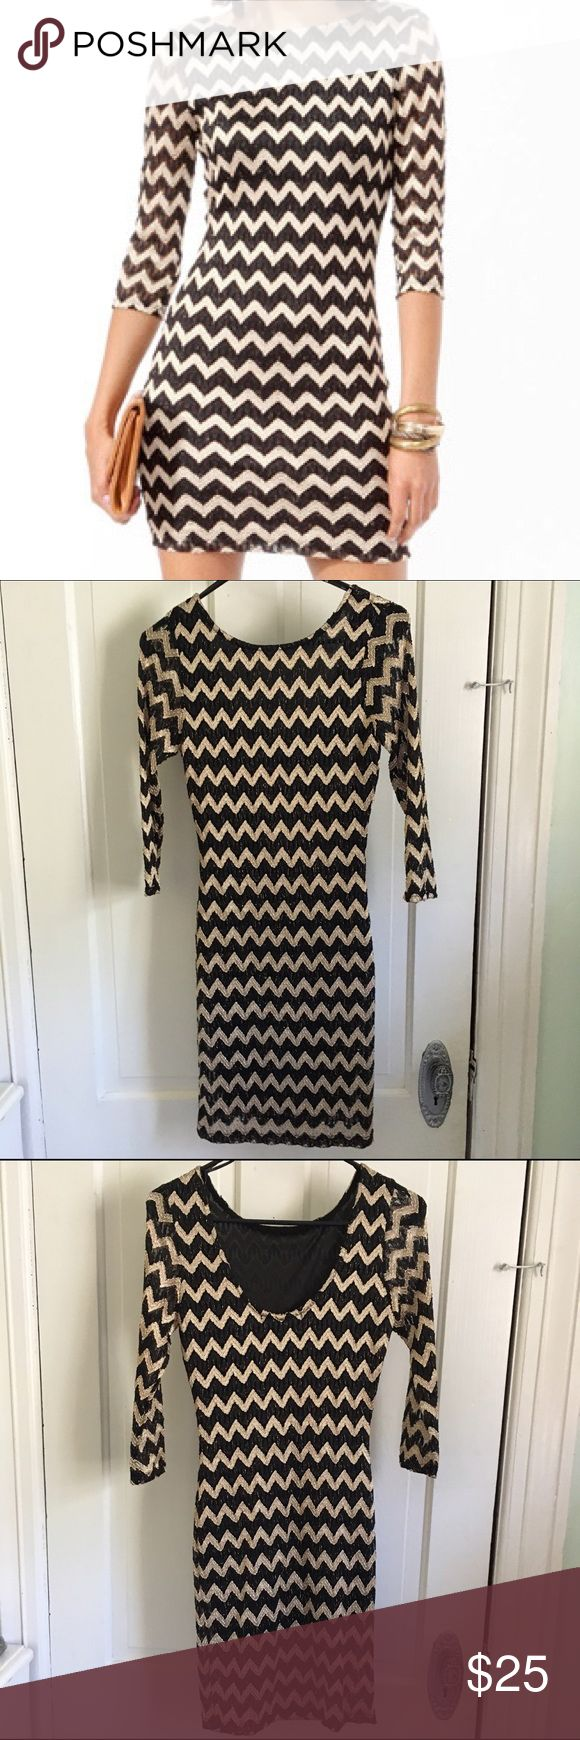 💥NEW💥 Zig-Zag Bodycon Metallic Sleeved Dress NWT. This dress hugs every curve and lets you look hot while still keeping it classy. The back of the dress dips while the front keeps your chest covered. Less is more with this super short hem line. NO TRADES. Forever 21 Dresses Mini